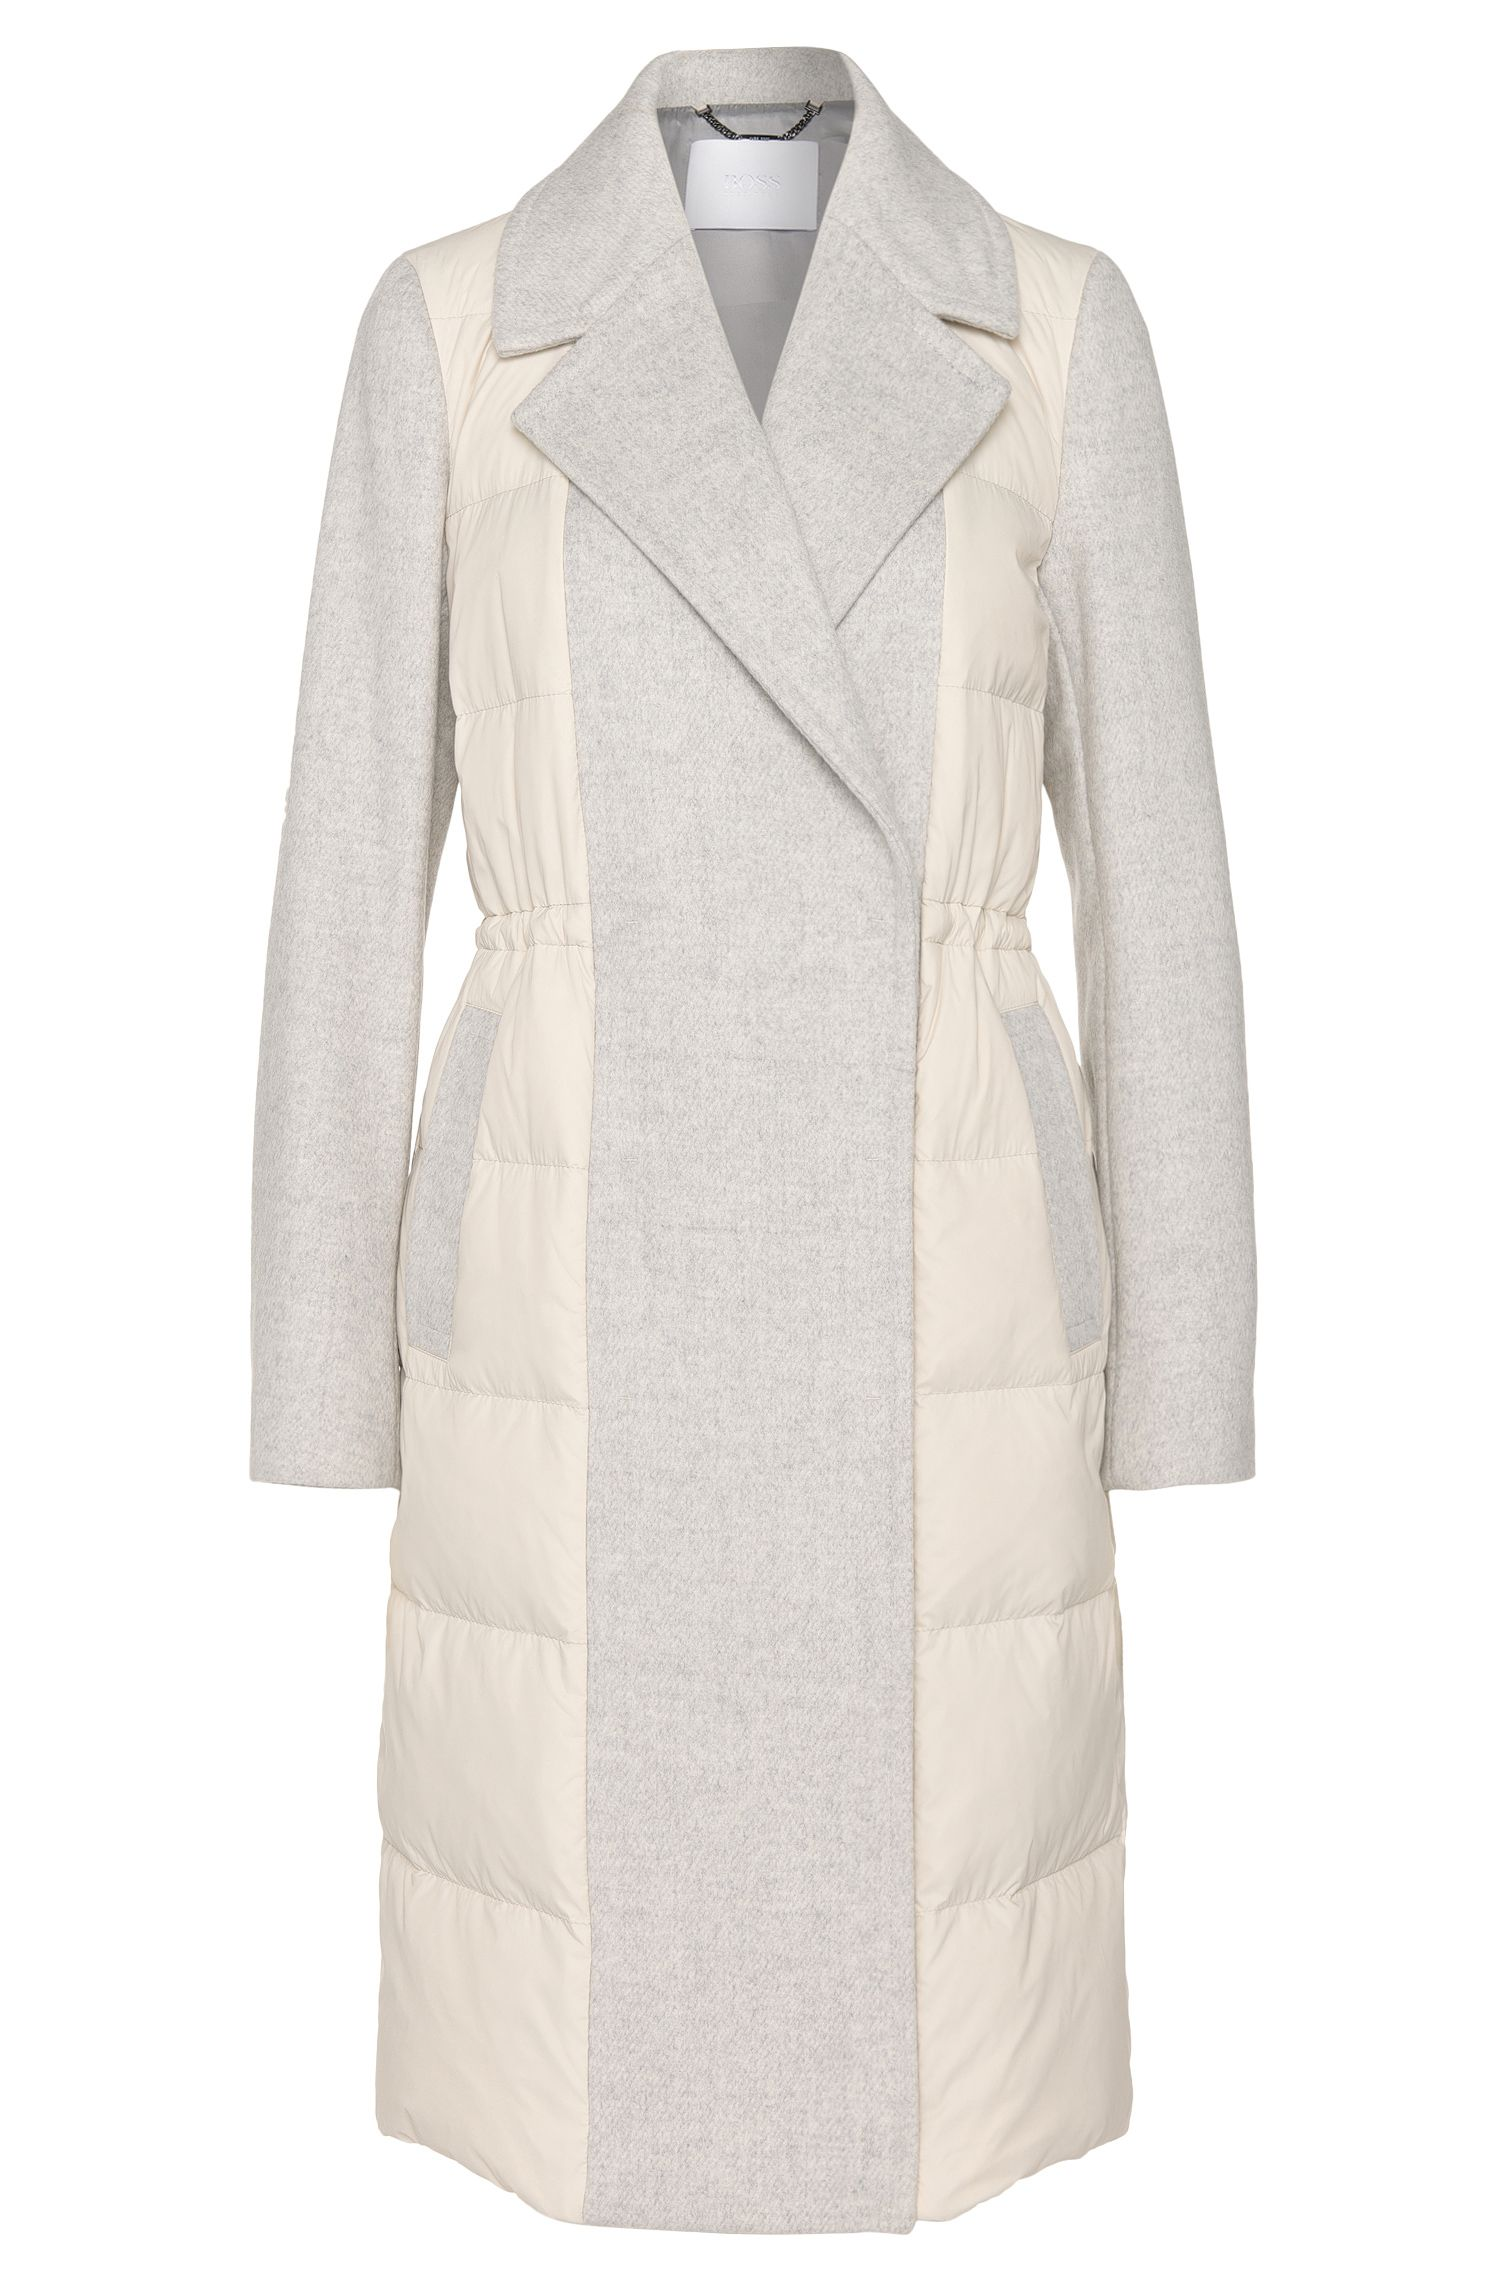 'Polea' | Wool Nylon Long Puffer Coat